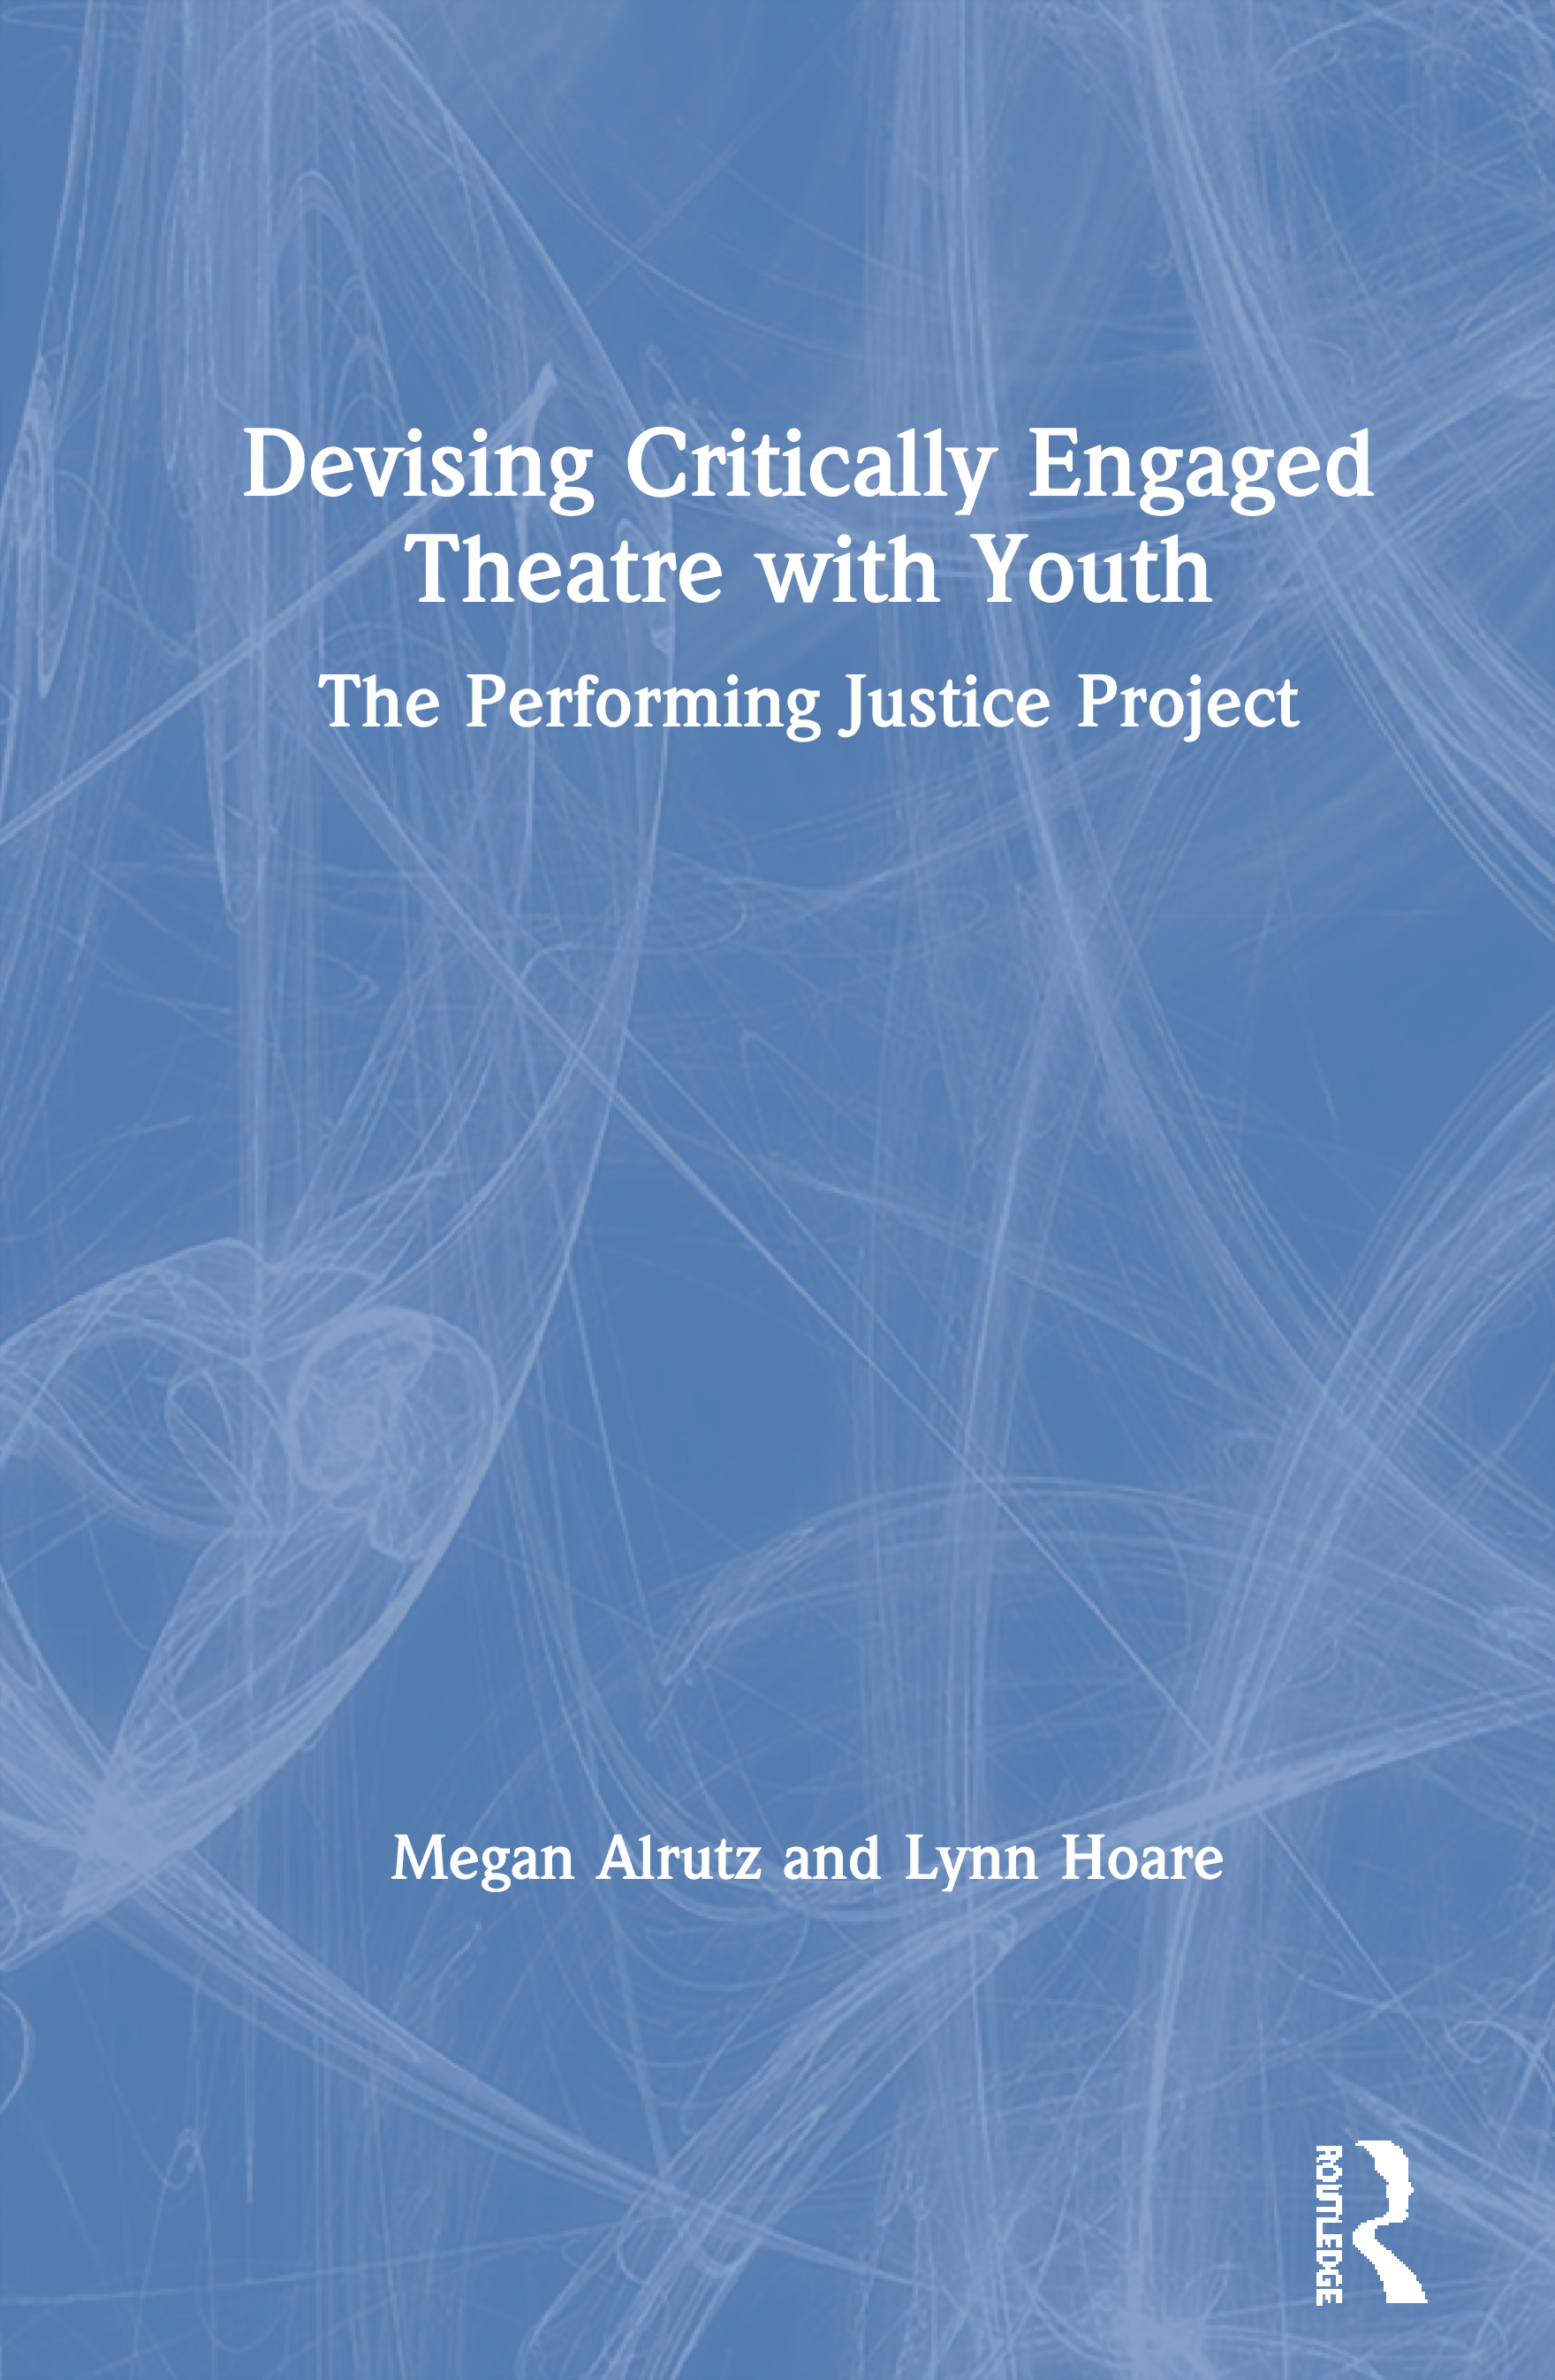 Devising Critically Engaged Theatre with Youth: The Performing Justice Project book cover